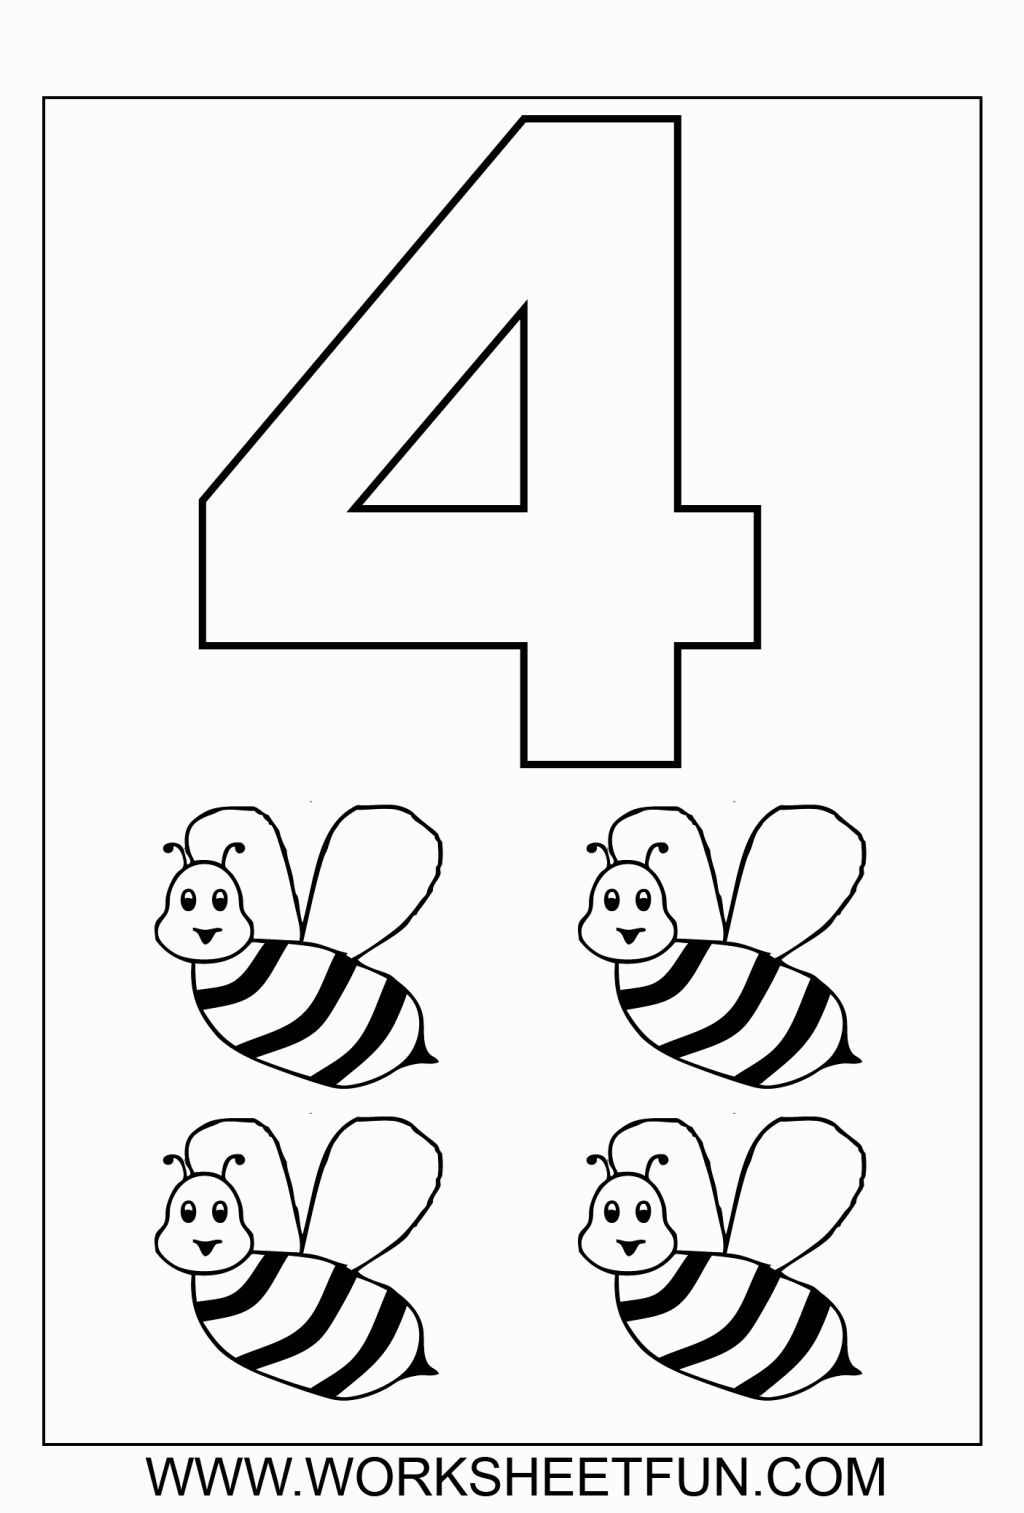 number 3 coloring pages. Number 3 Coloring Sheet  Pages Pinterest